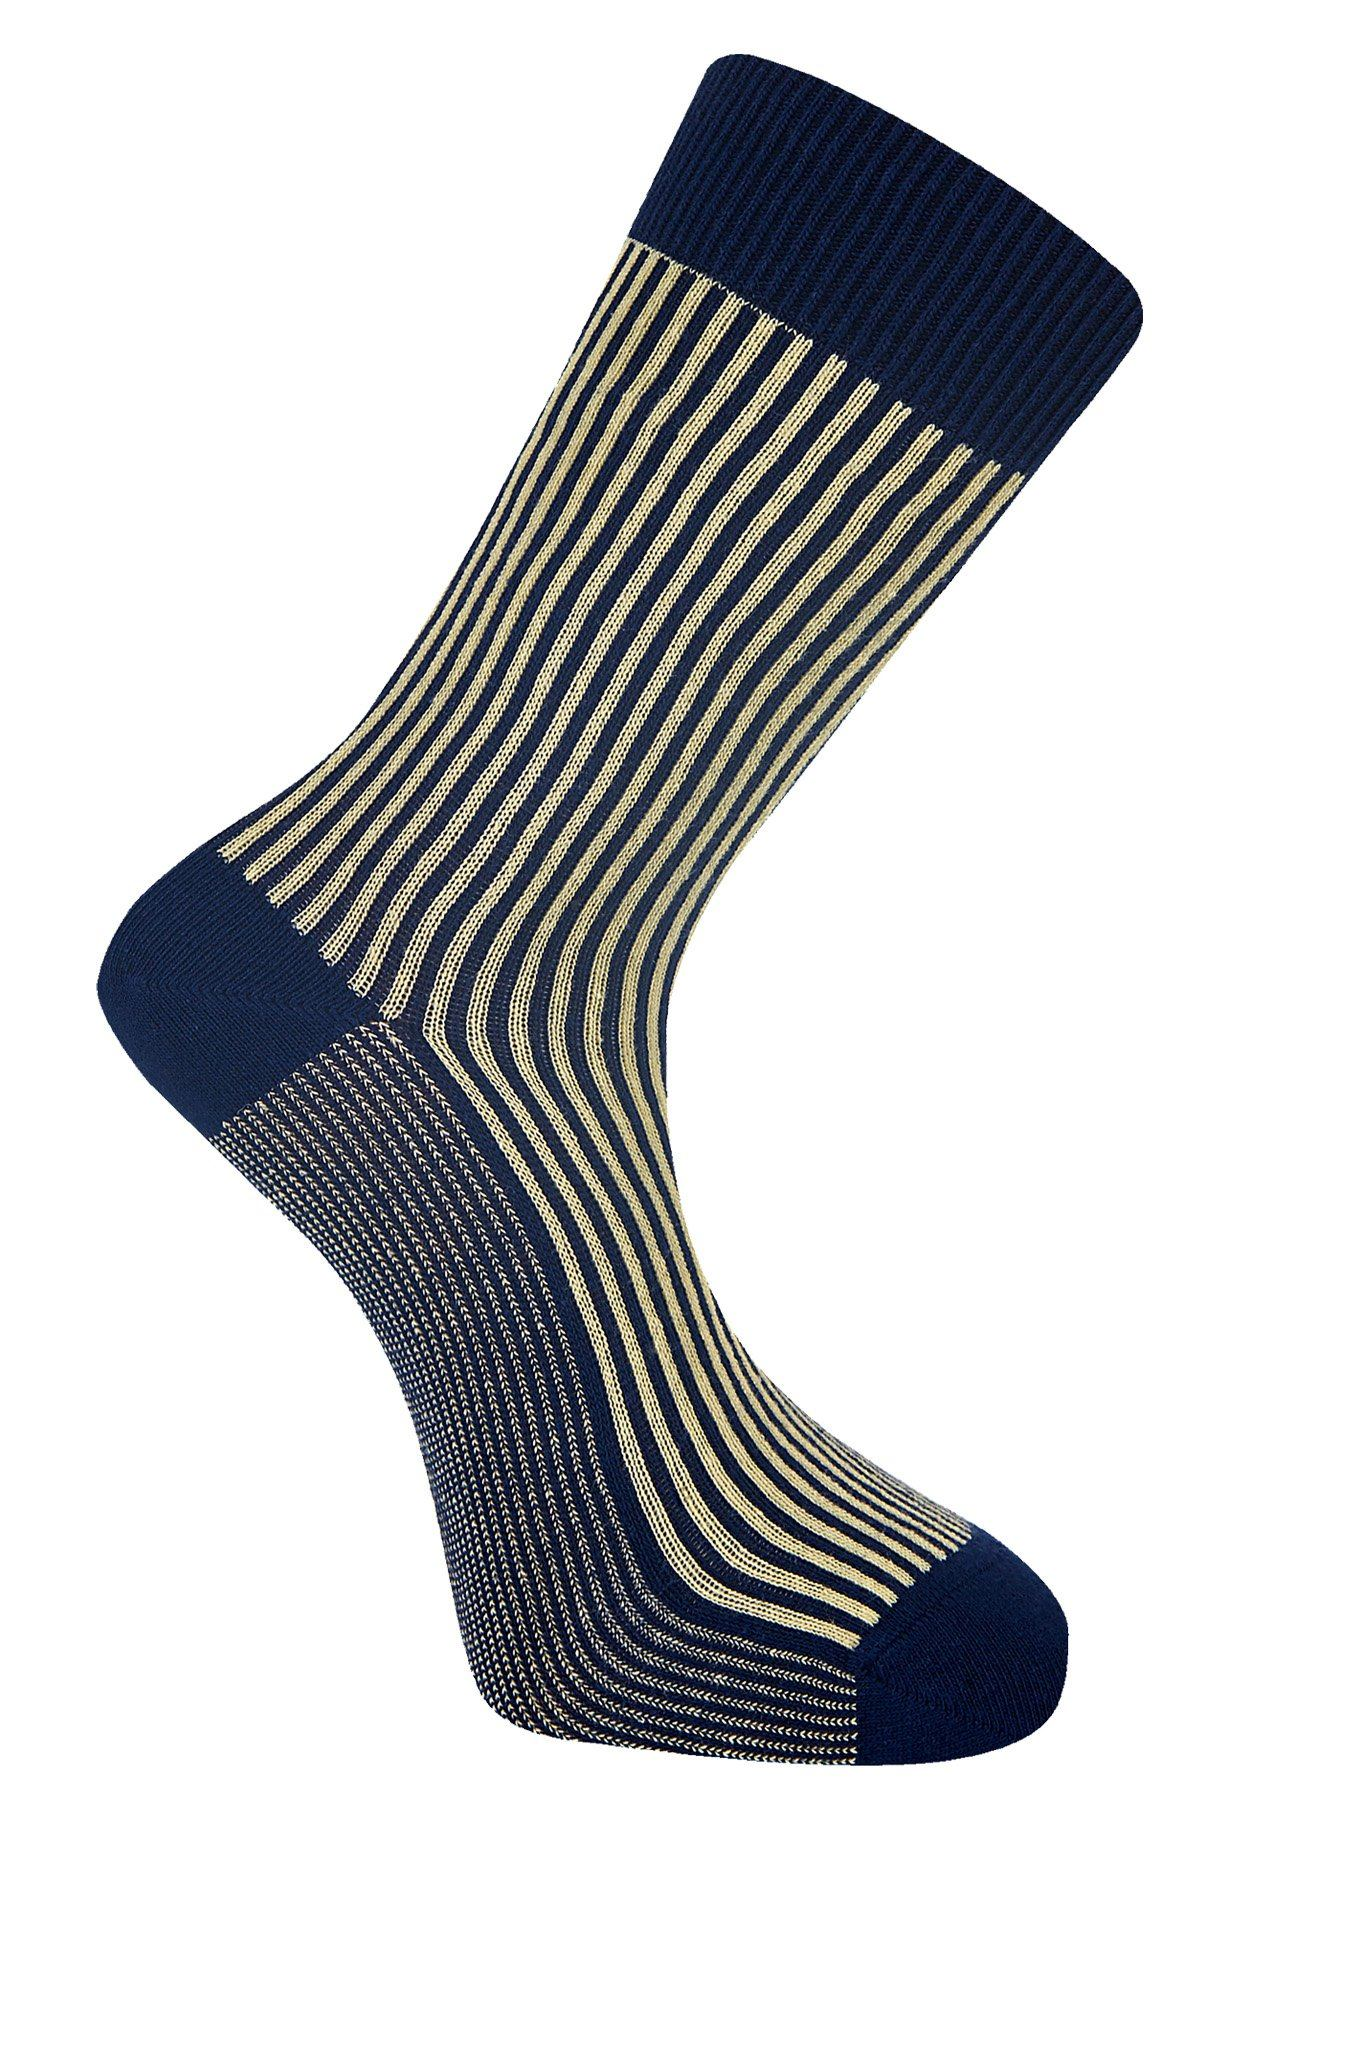 VERTICAL Mimosa Organic Cotton Socks - Komodo Fashion